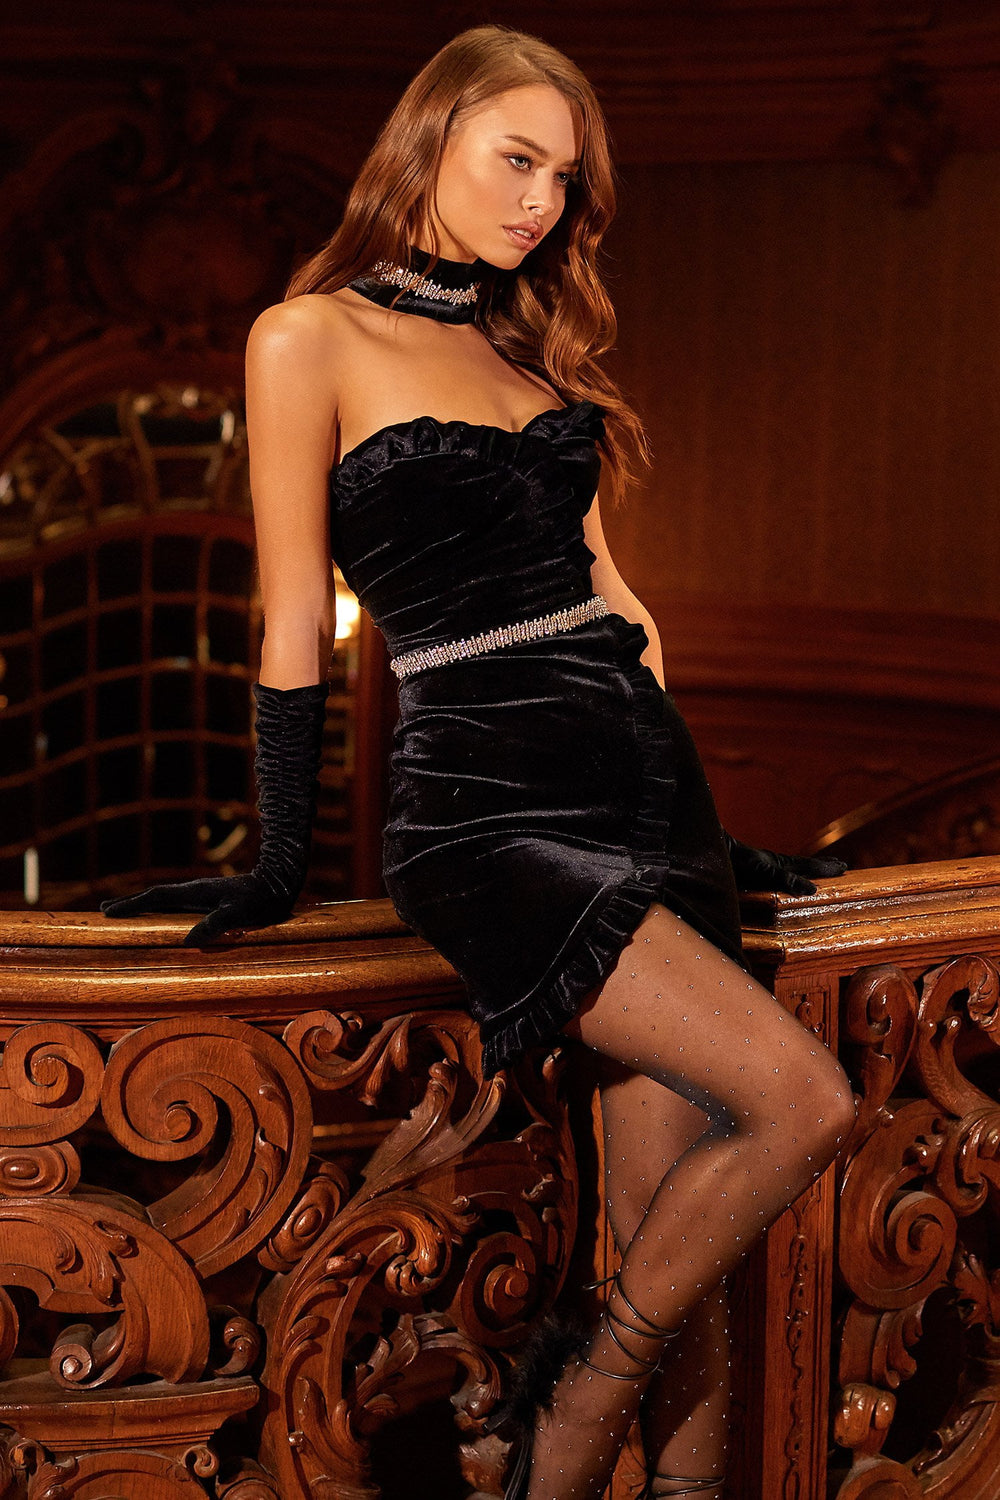 Romina Dress - Black Velvet Strapless Mini Dress with Rhinestones